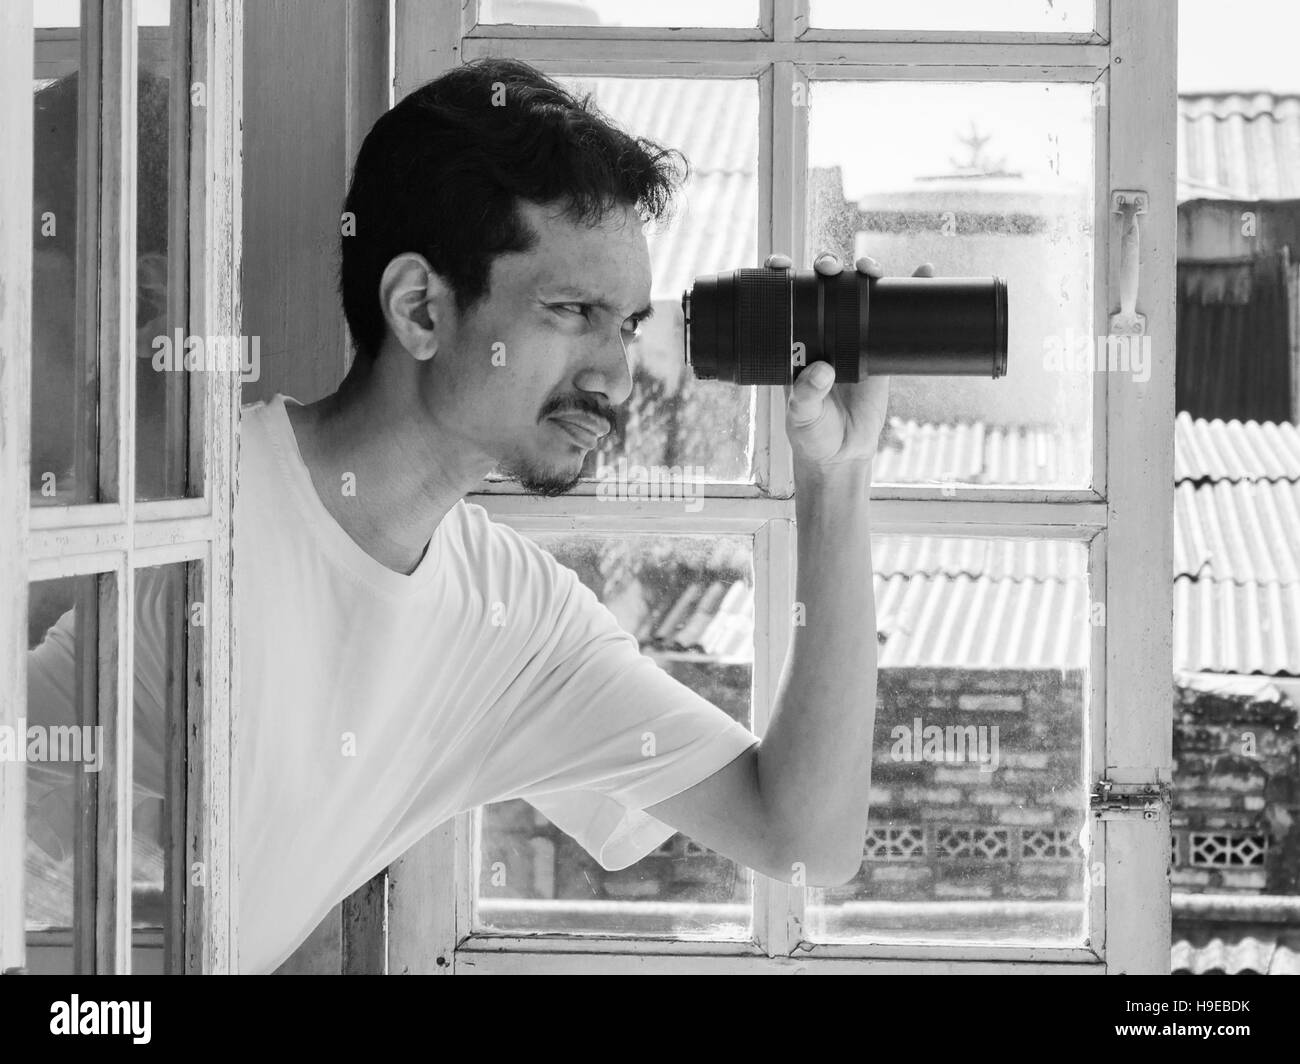 Man looking out through a window using a telephoto lens. Humorous concept in Black and white photography. - Stock Image